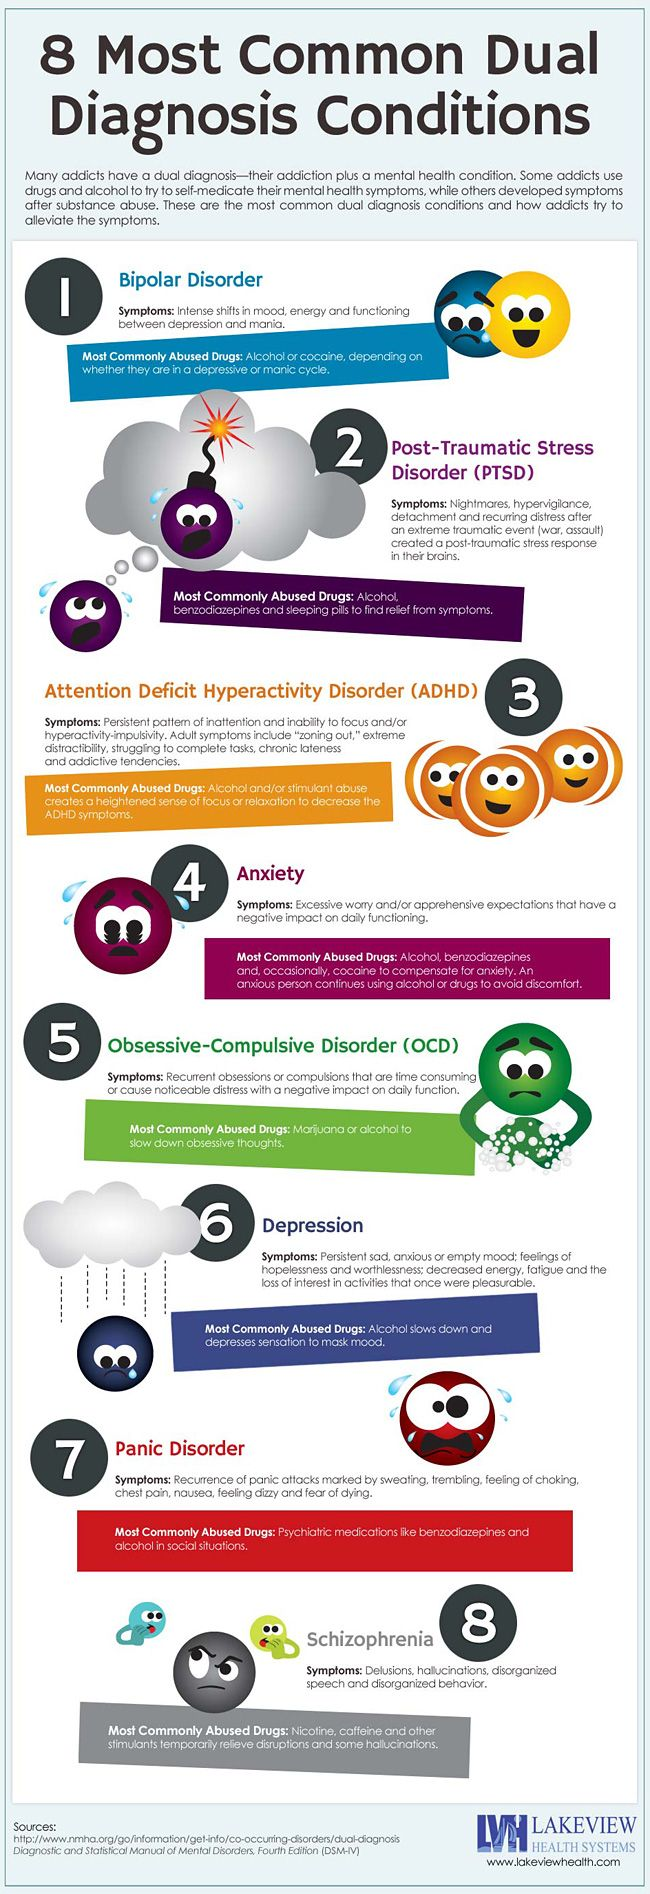 What Are the Most Common Dual Diagnosis Disorders?